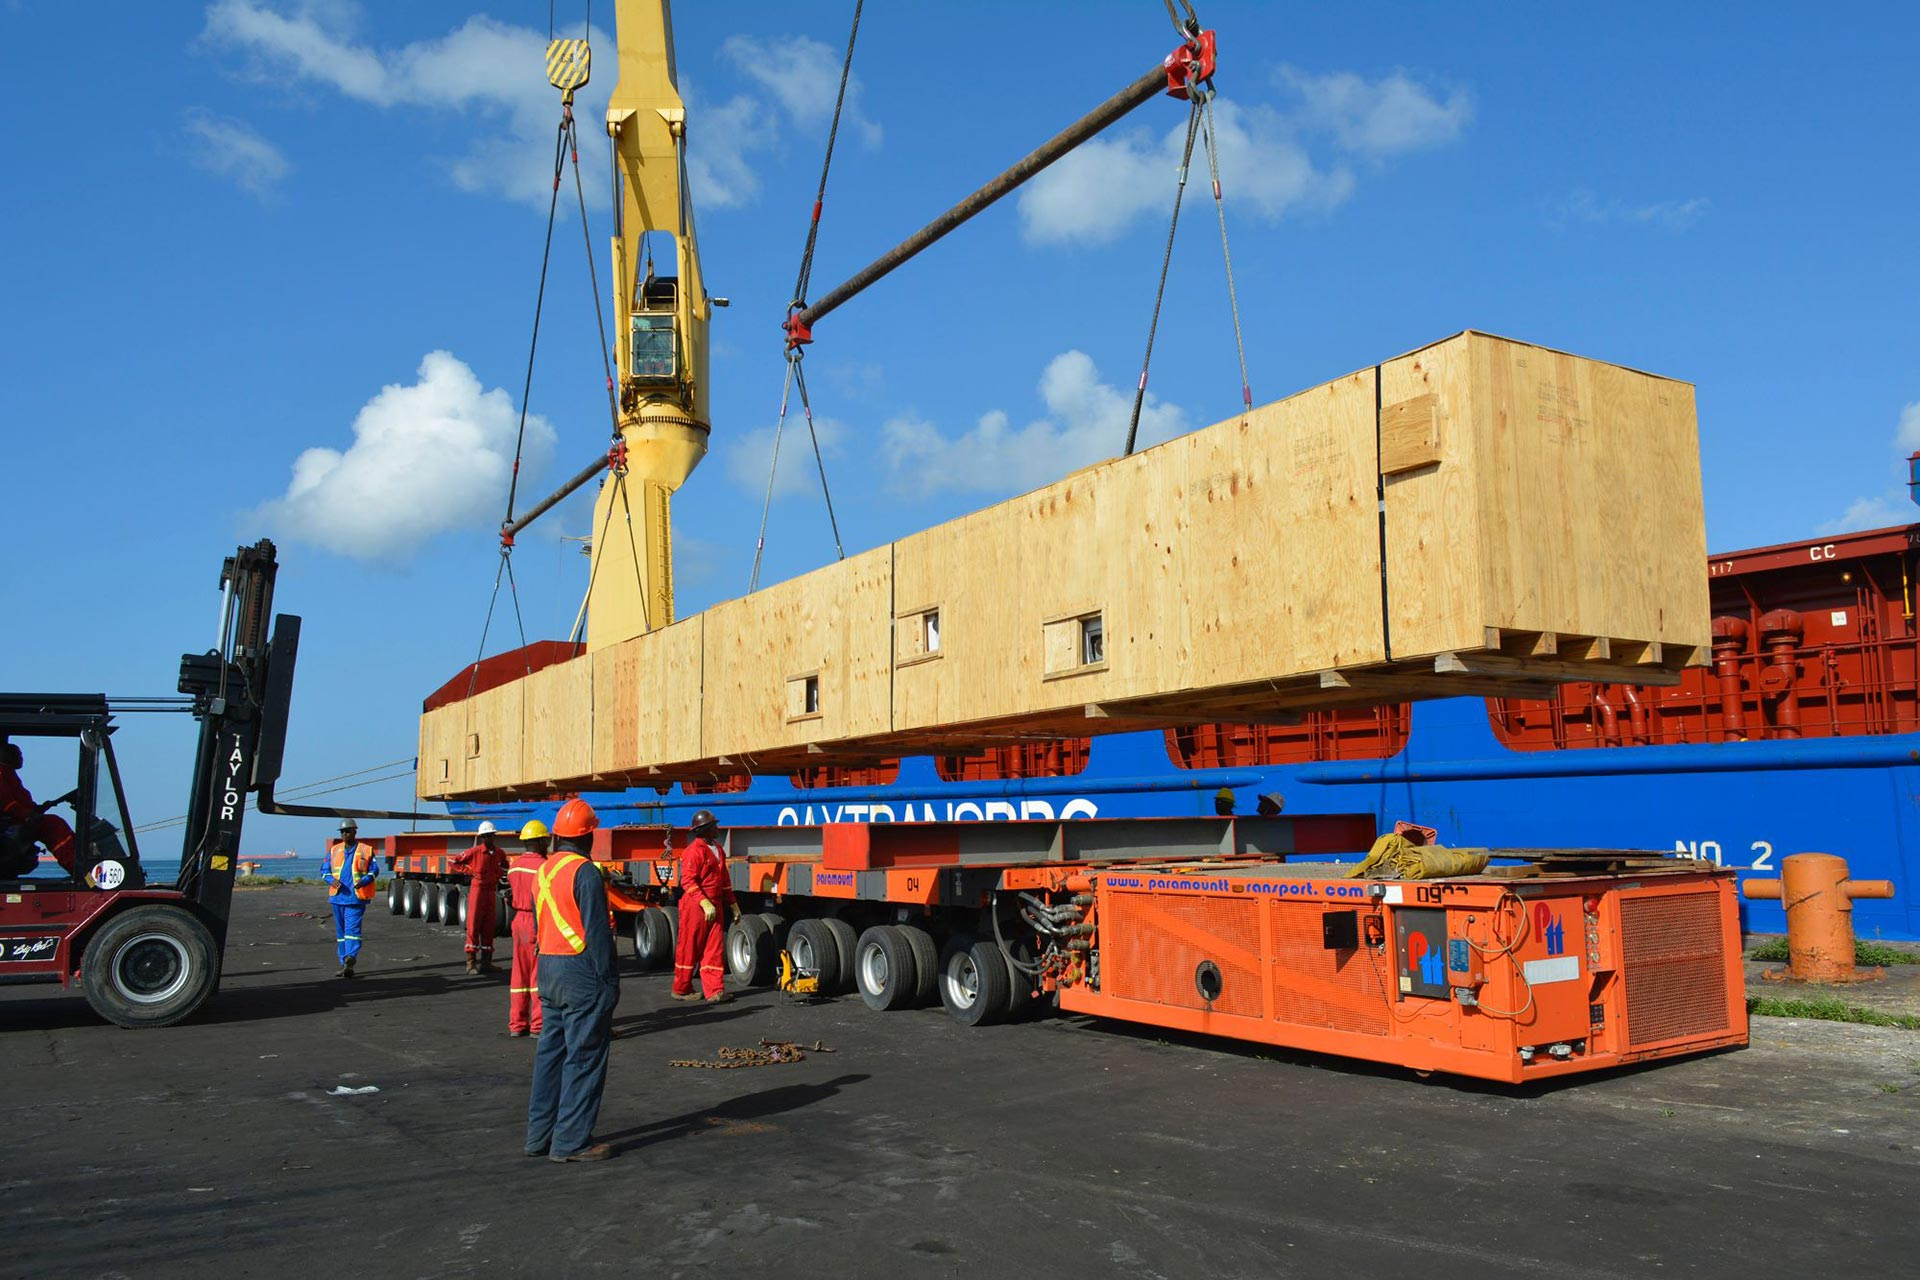 Projects Cargo Services